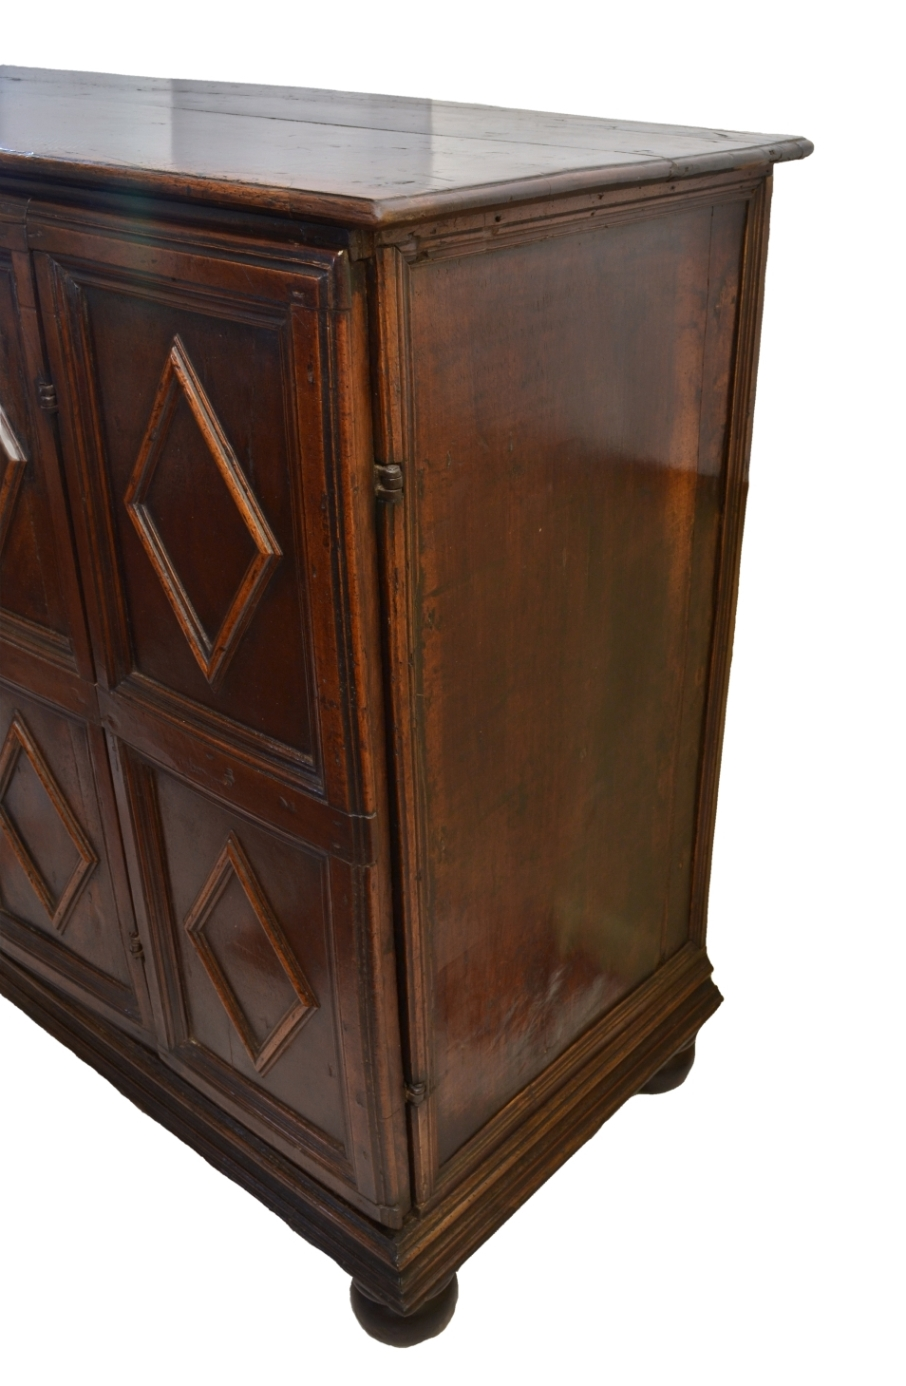 View 5: Italian Walnut Credenza, 18th c.